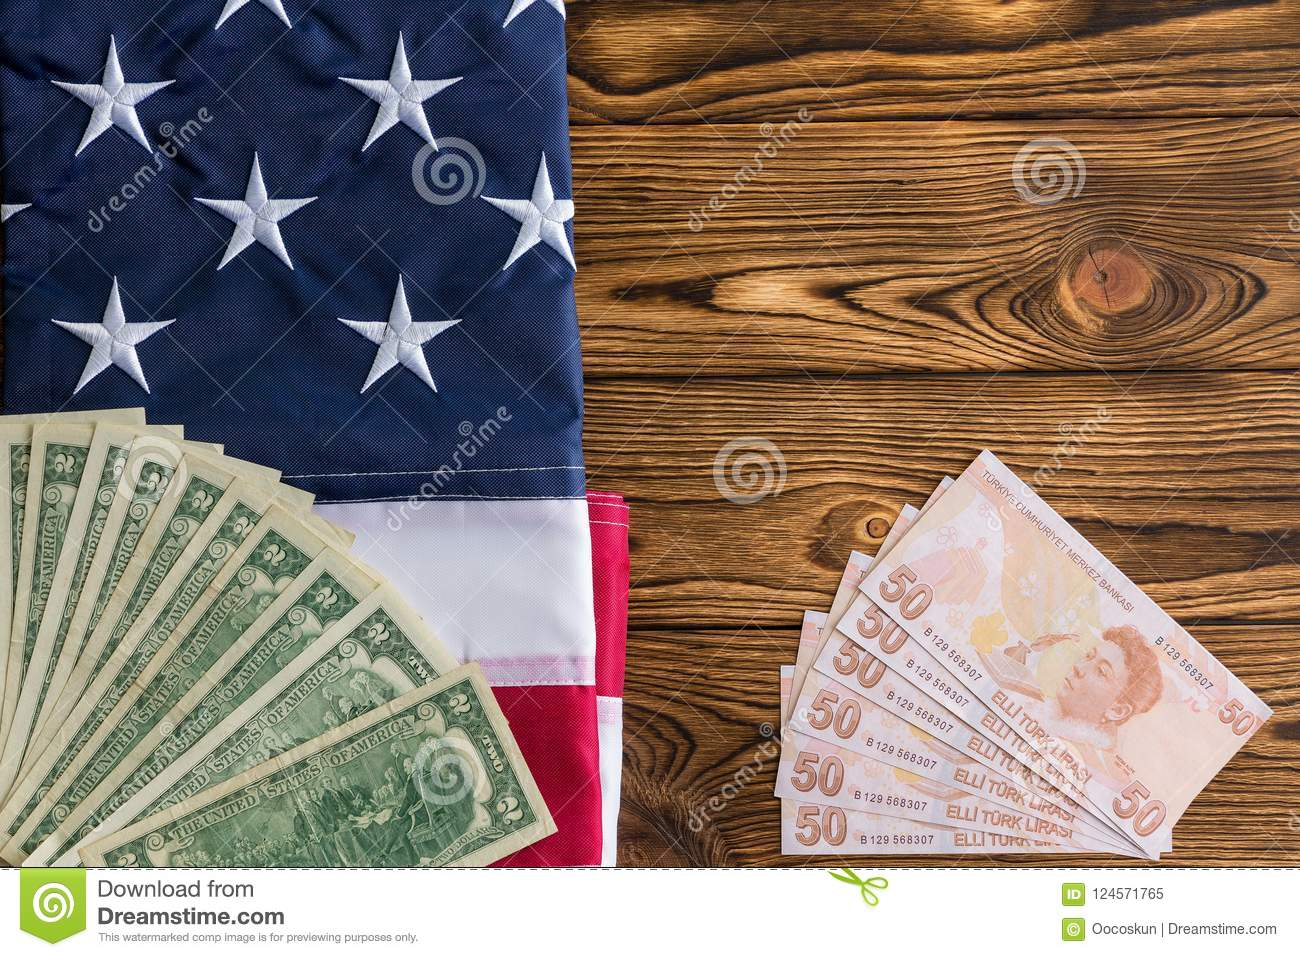 USD and Turkish Lira with the American flag